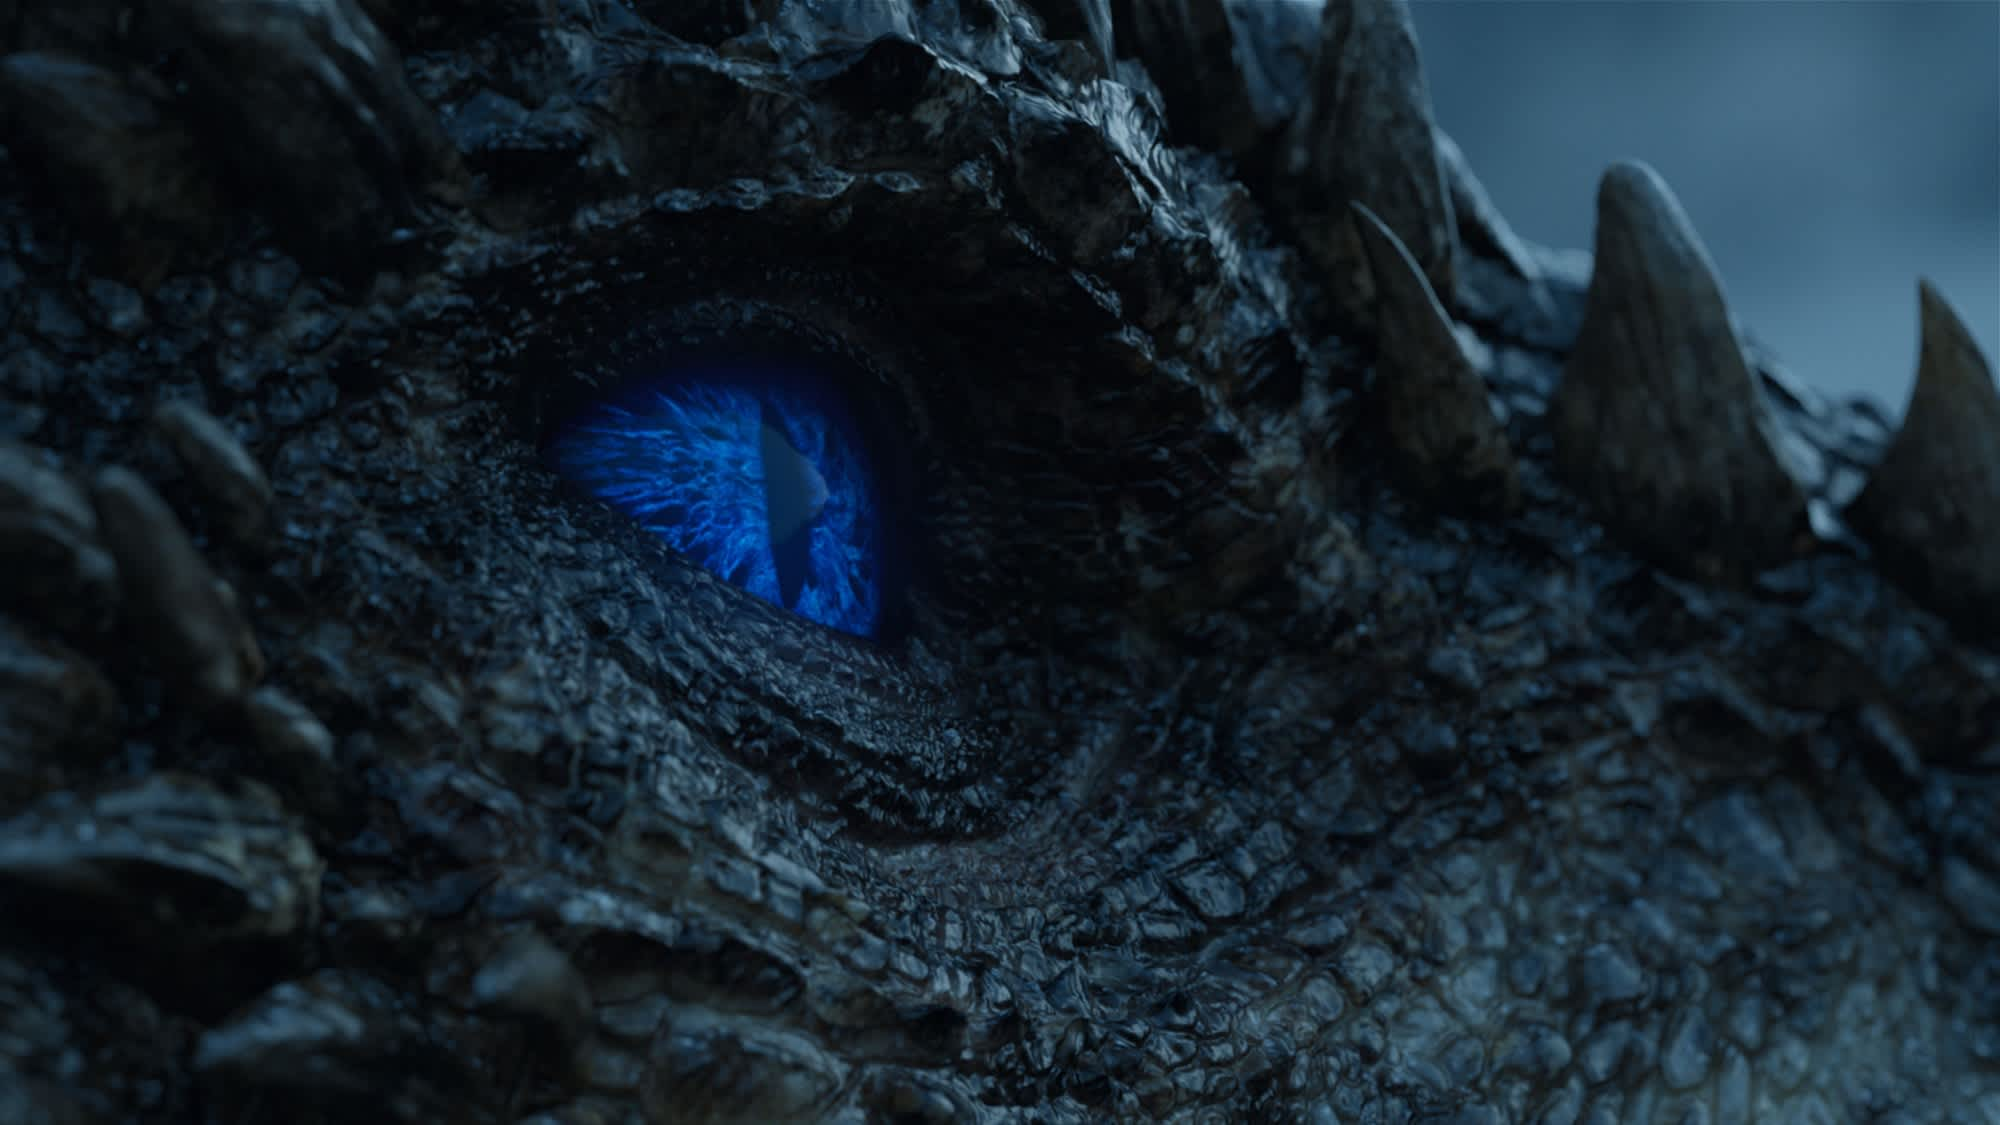 'Game of Thrones' prequel pilot not picked up by HBO